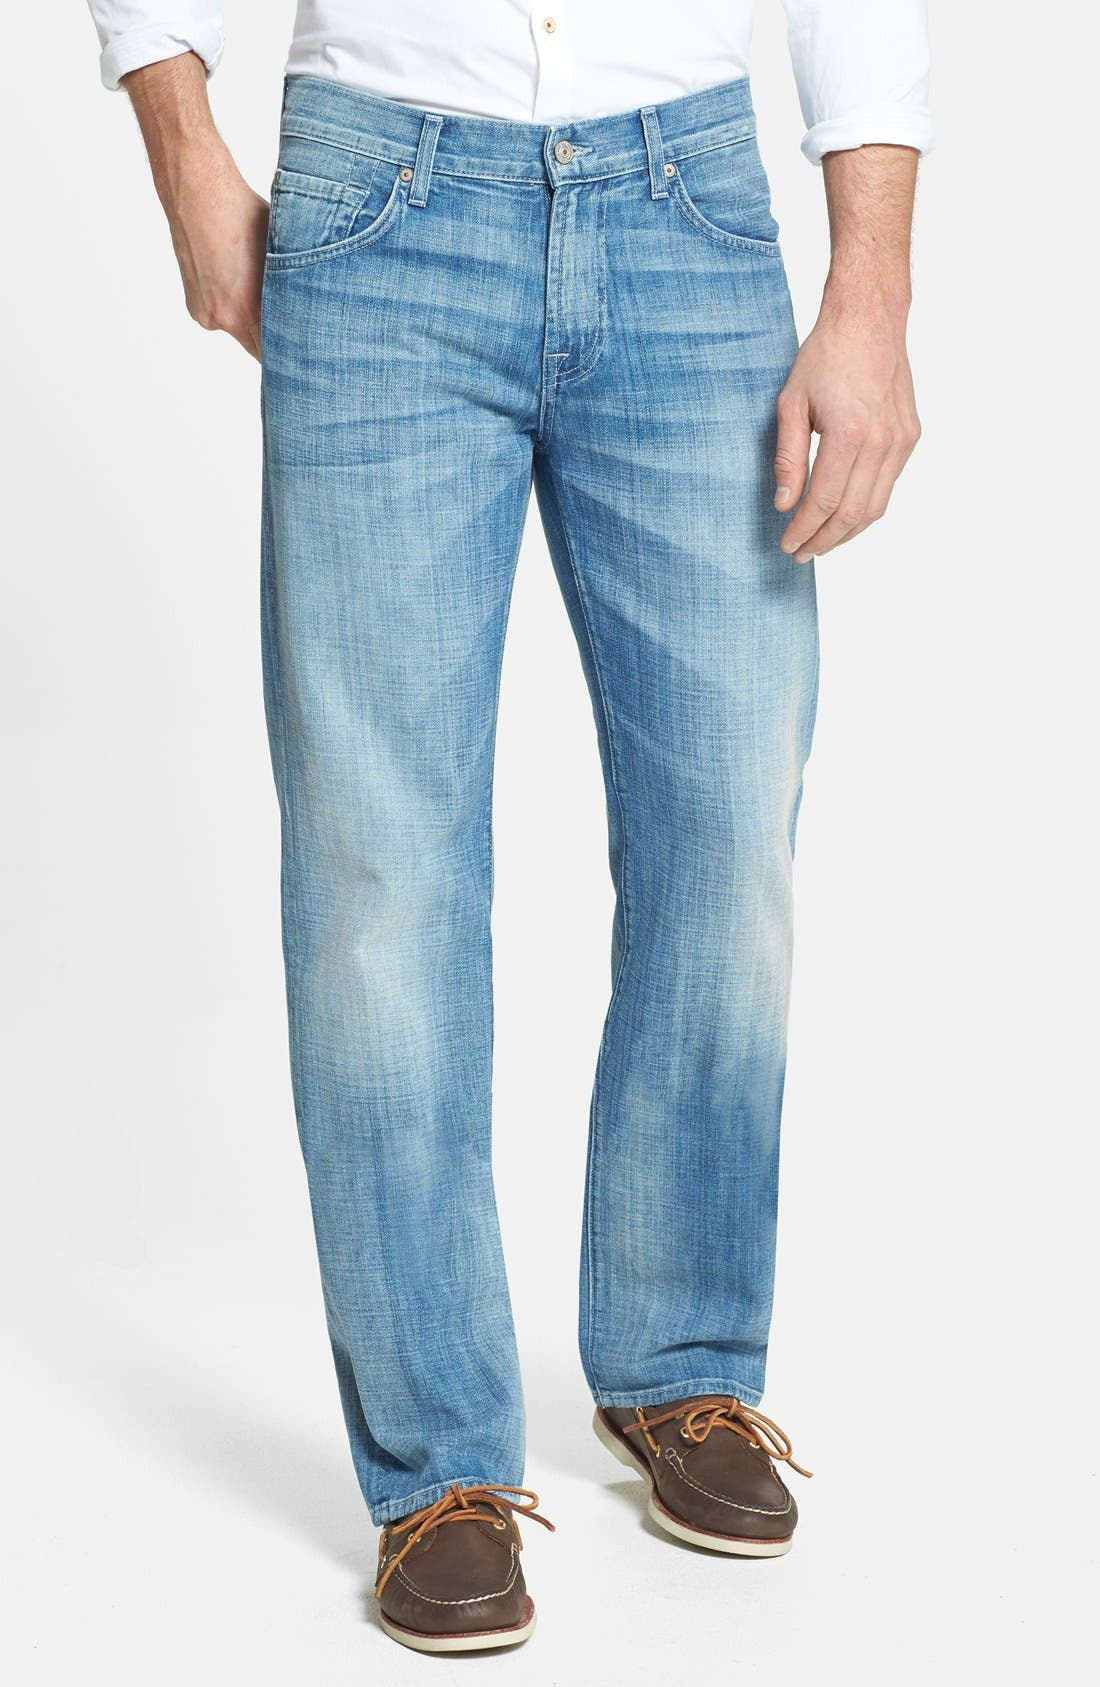 Alternate Image 1 Selected - 7 For All Mankind® 'Austyn' Relaxed Fit Jeans (Ivory Coast)